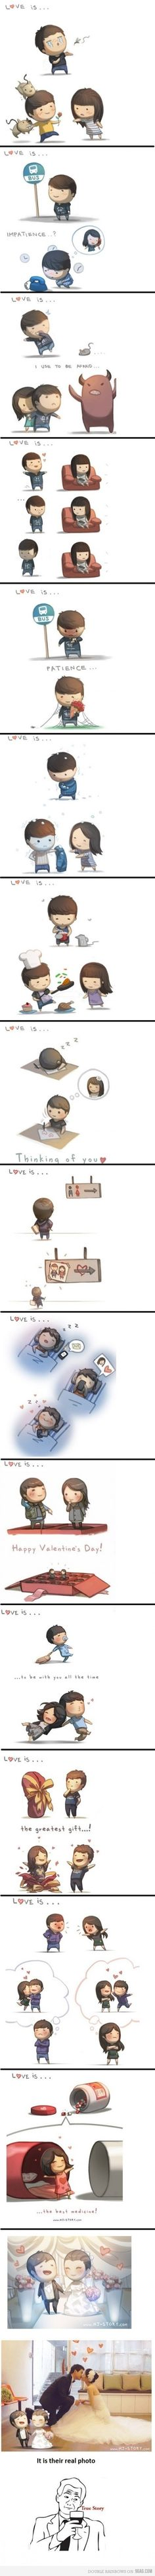 cute illustrations by Hj Story